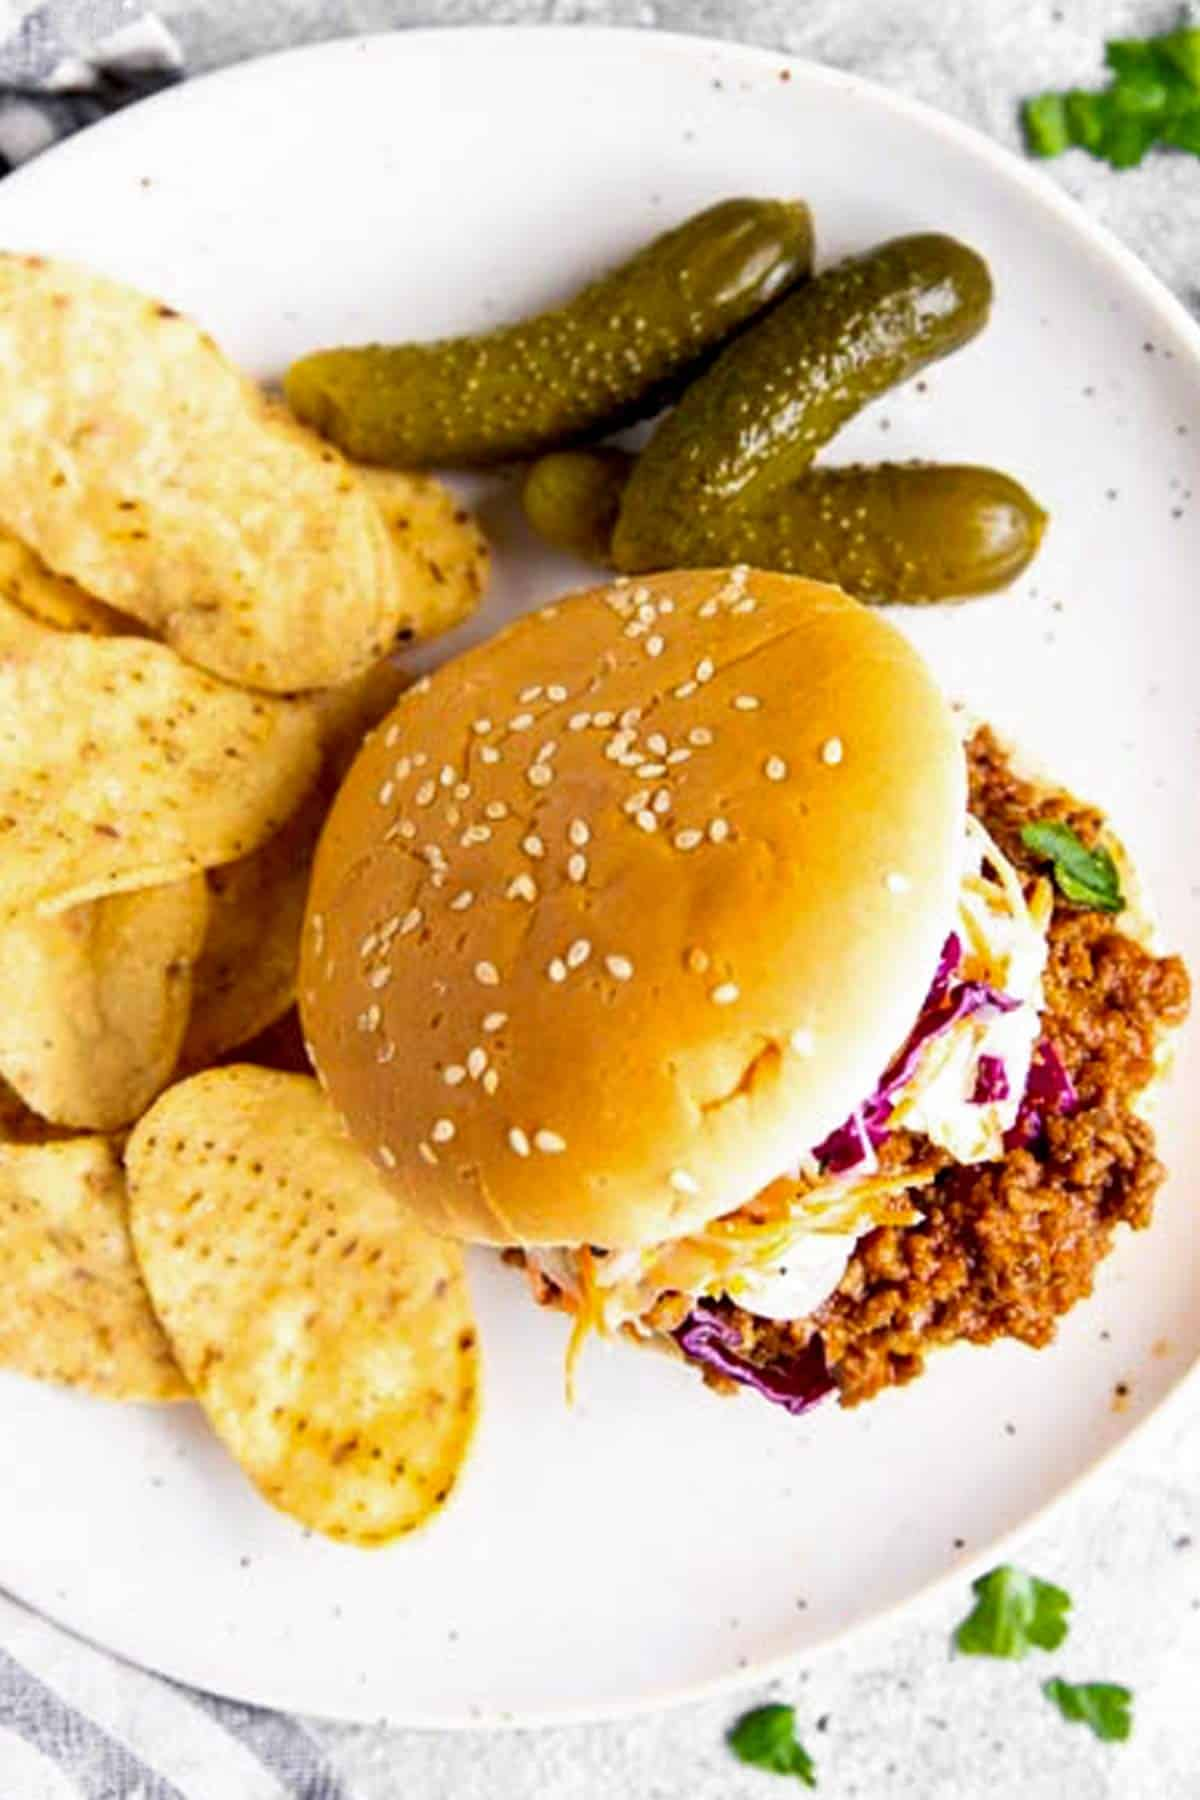 overhead view of sloppy Joe bun with chips and pickles on white plate